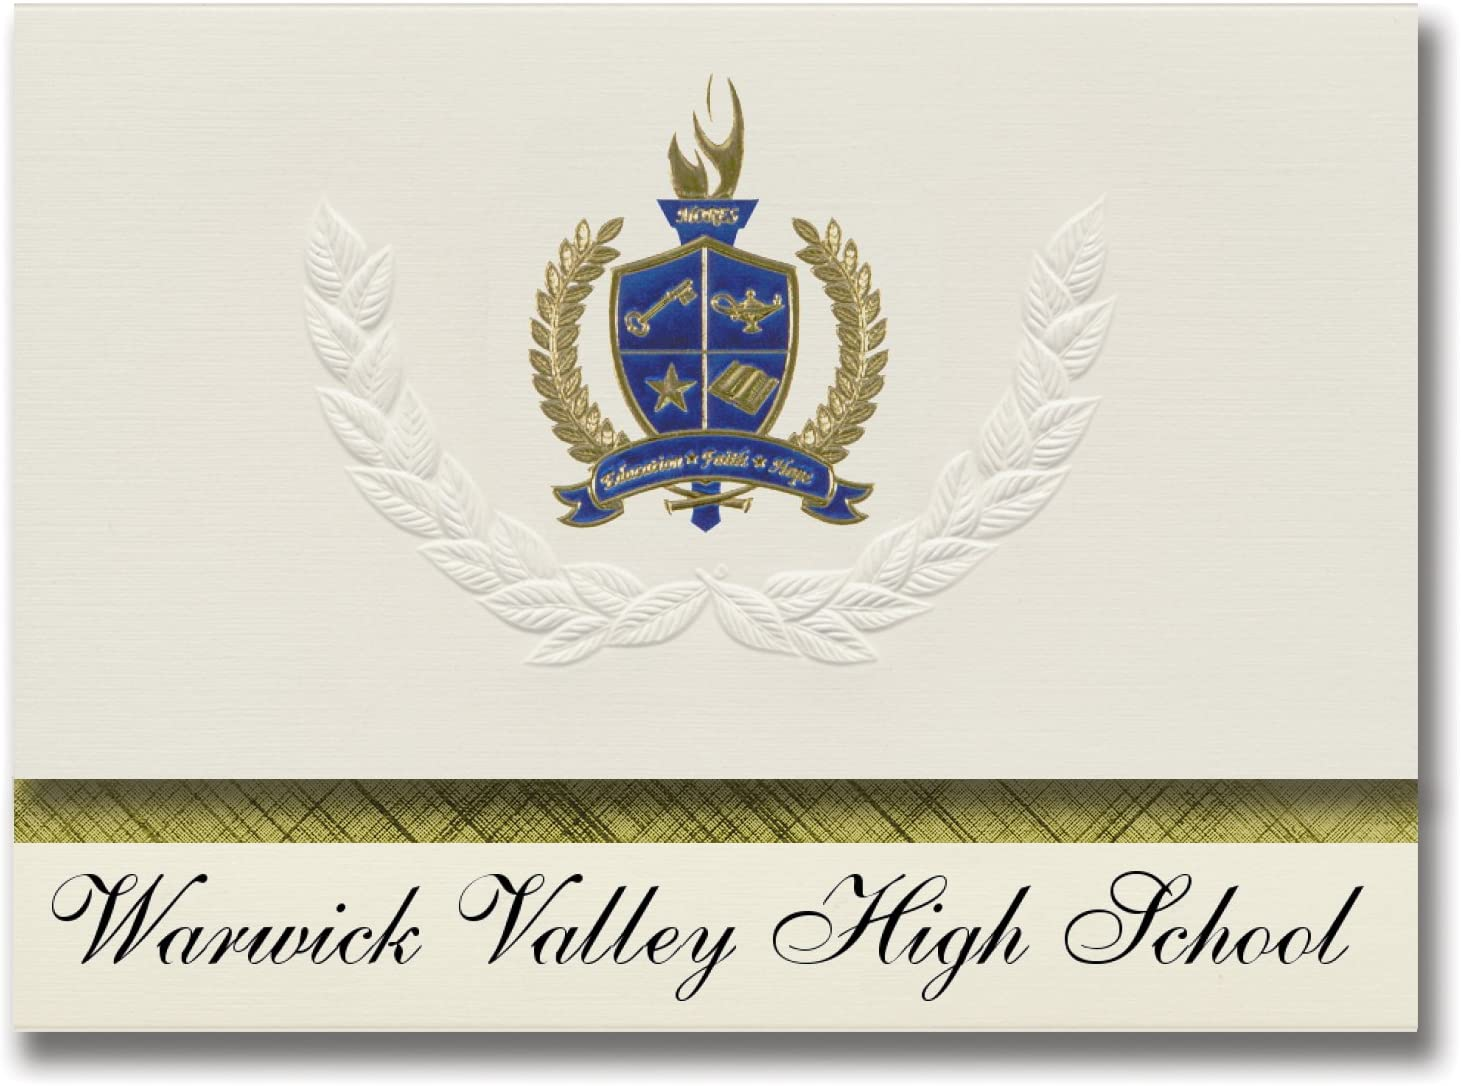 Signature Announcements Warwick Valley High School (Warwick, NY) Graduation Announcements, Presidential style, Elite package of 25 with Gold & Blue Metallic Foil seal